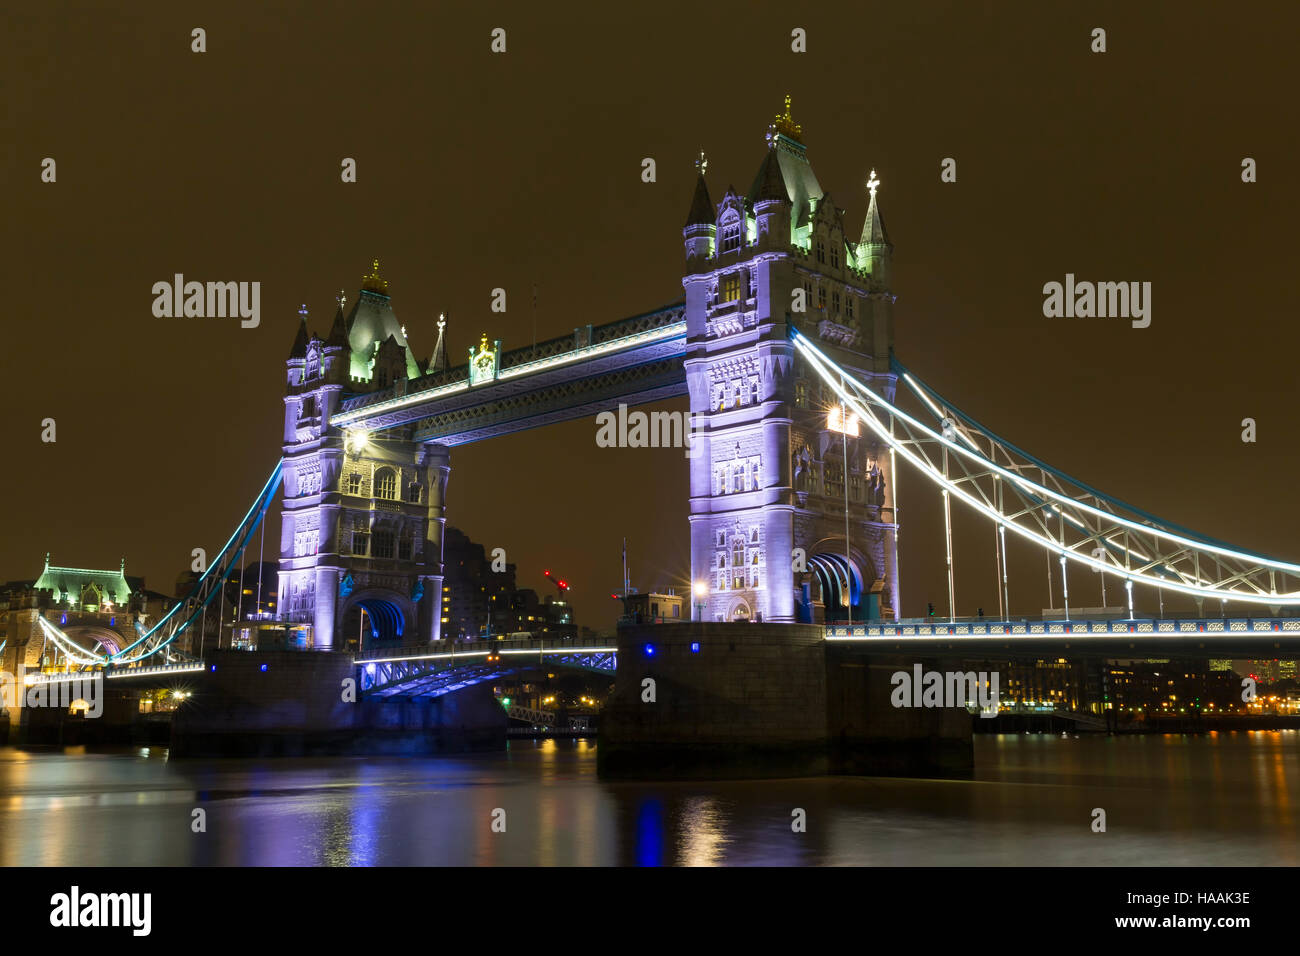 Tower Bridge, at Night from the South Bank, London, England, UK - Stock Image